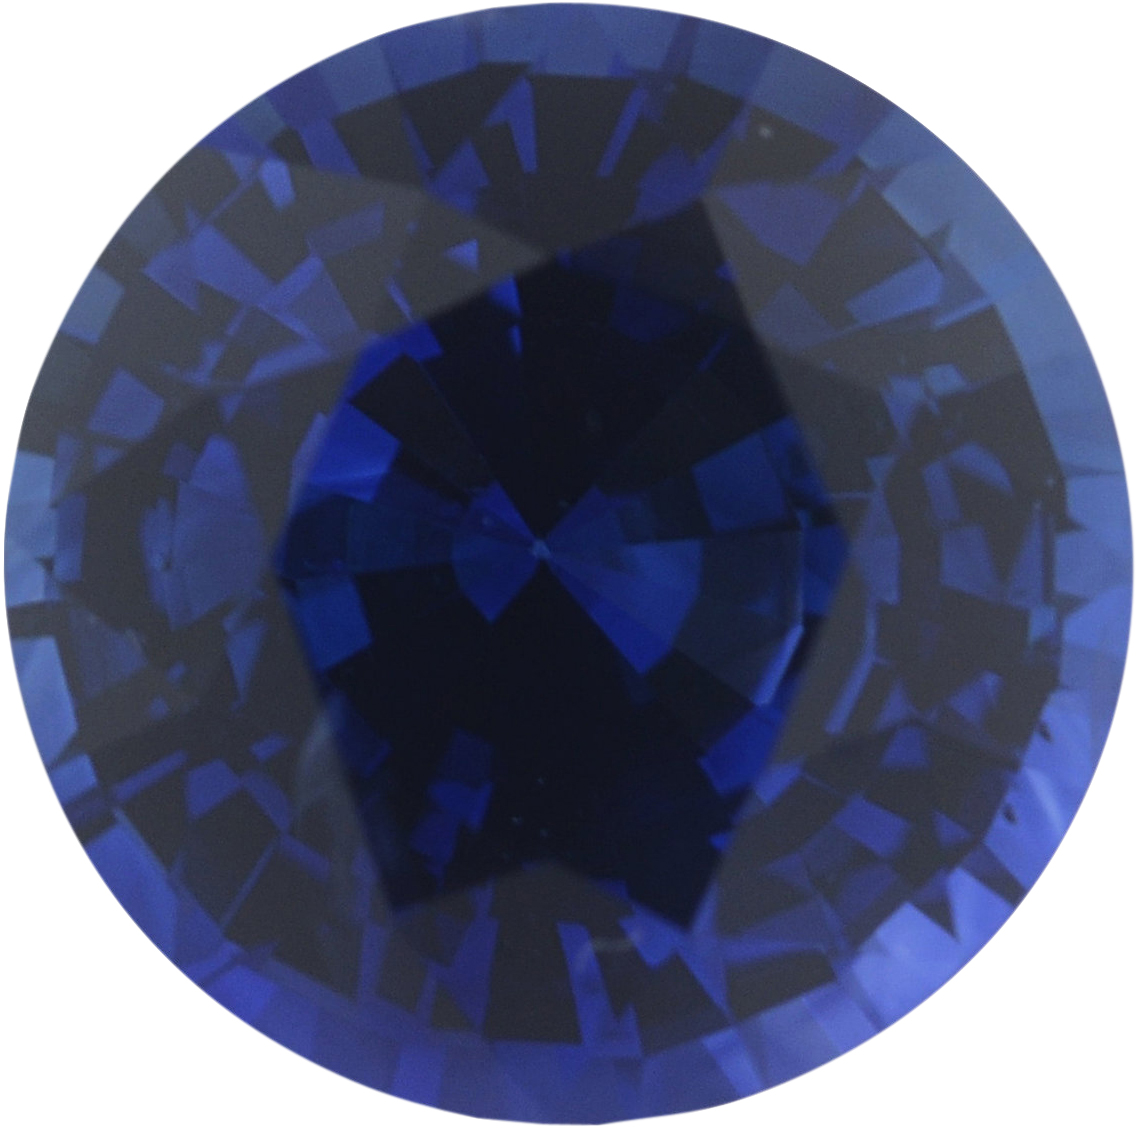 0.92 carats Blue Loose Sapphire Gemstone in Round Cut, 5.8 mm